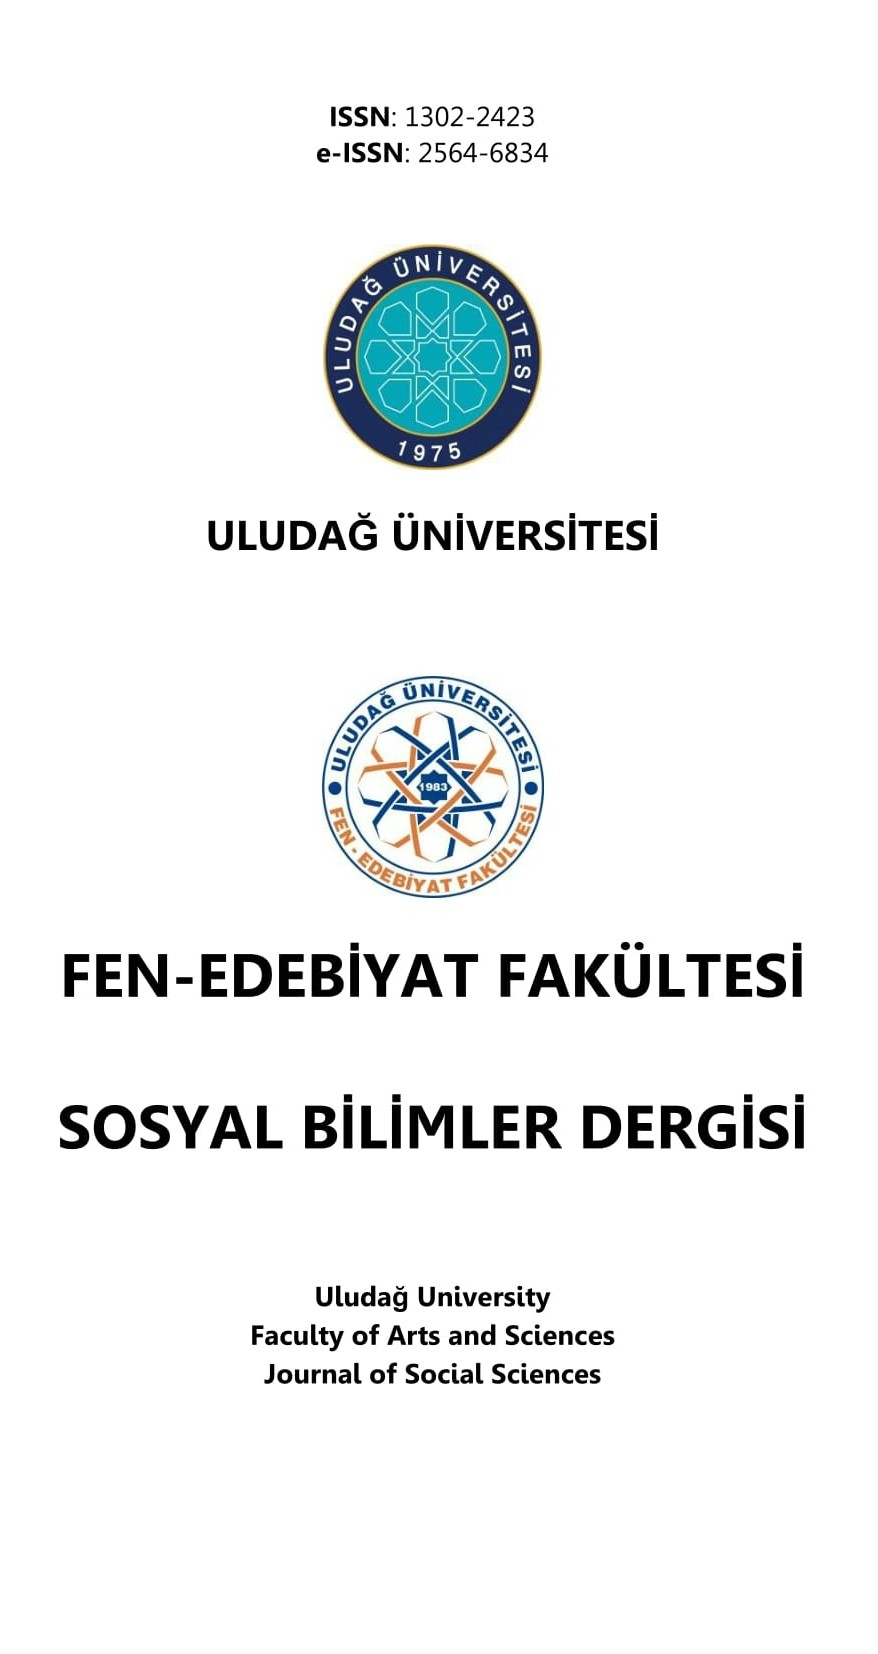 Uludağ University Faculty of Arts and Sciences Journal of Social Sciences